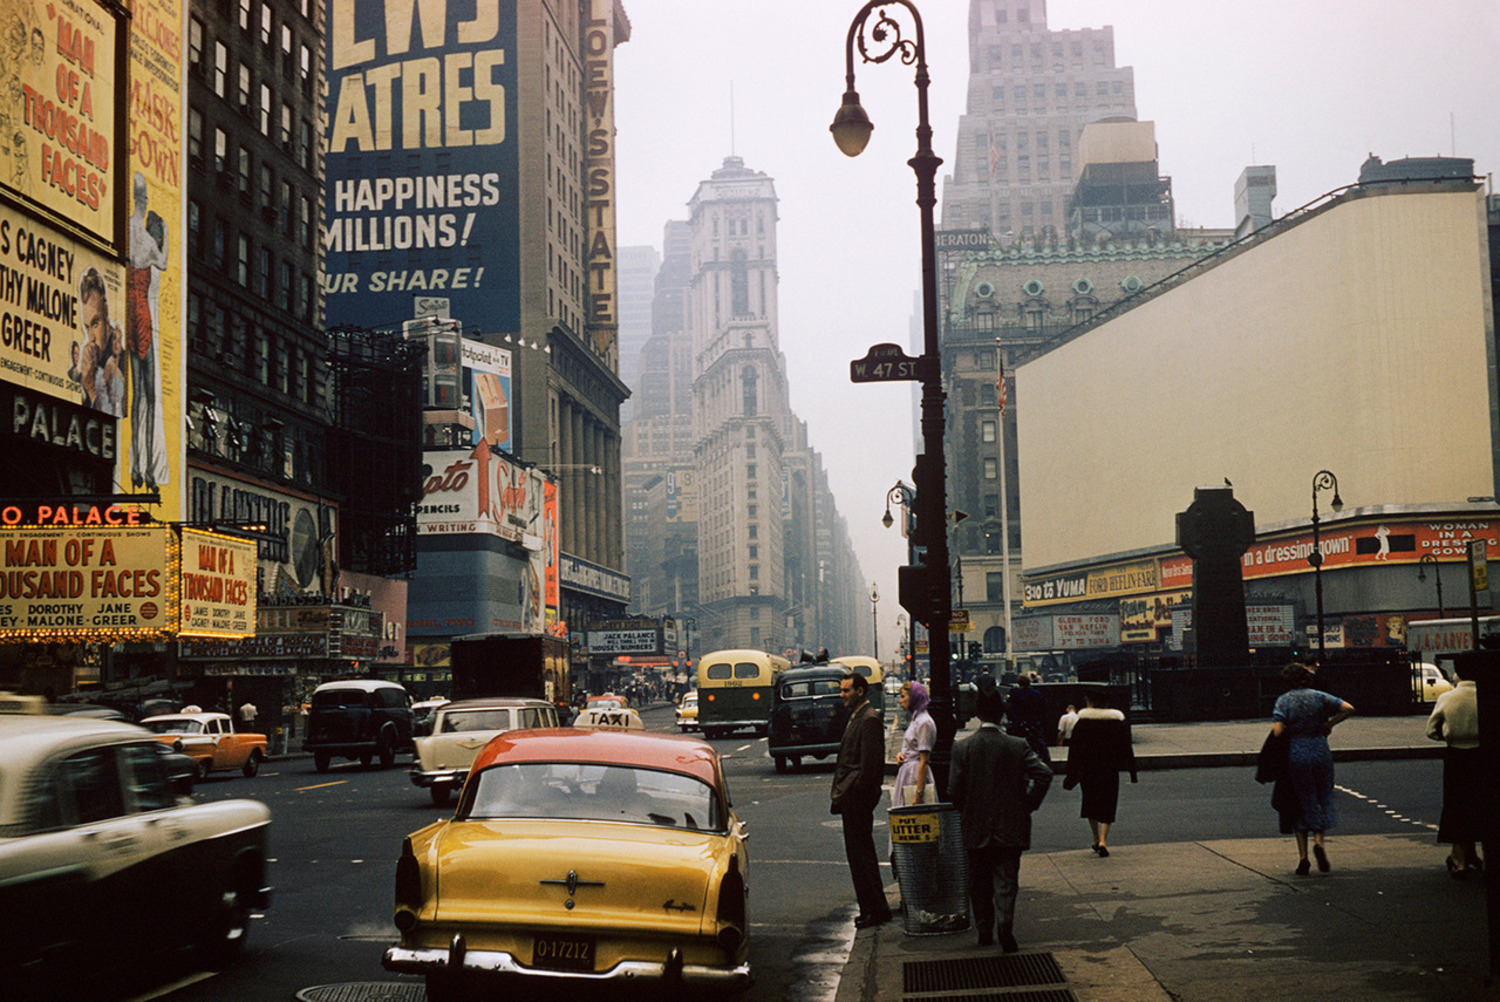 West 47th Street and 7th Avenue, Times Square, New York City, 1957